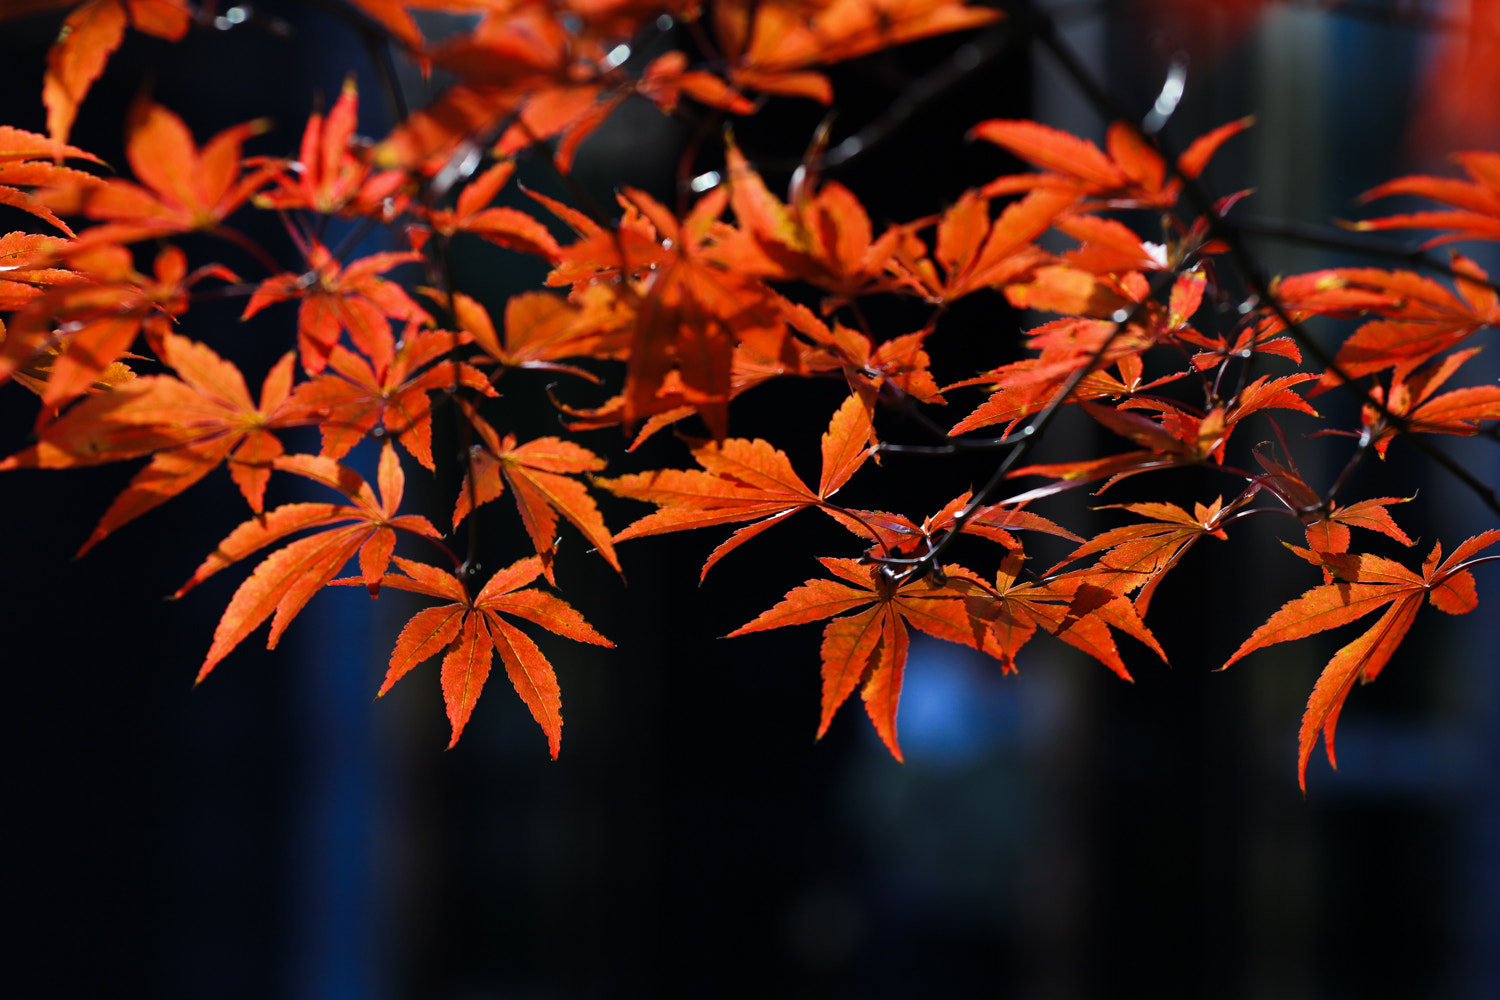 Photograph red leaves by jacky mao on 500px